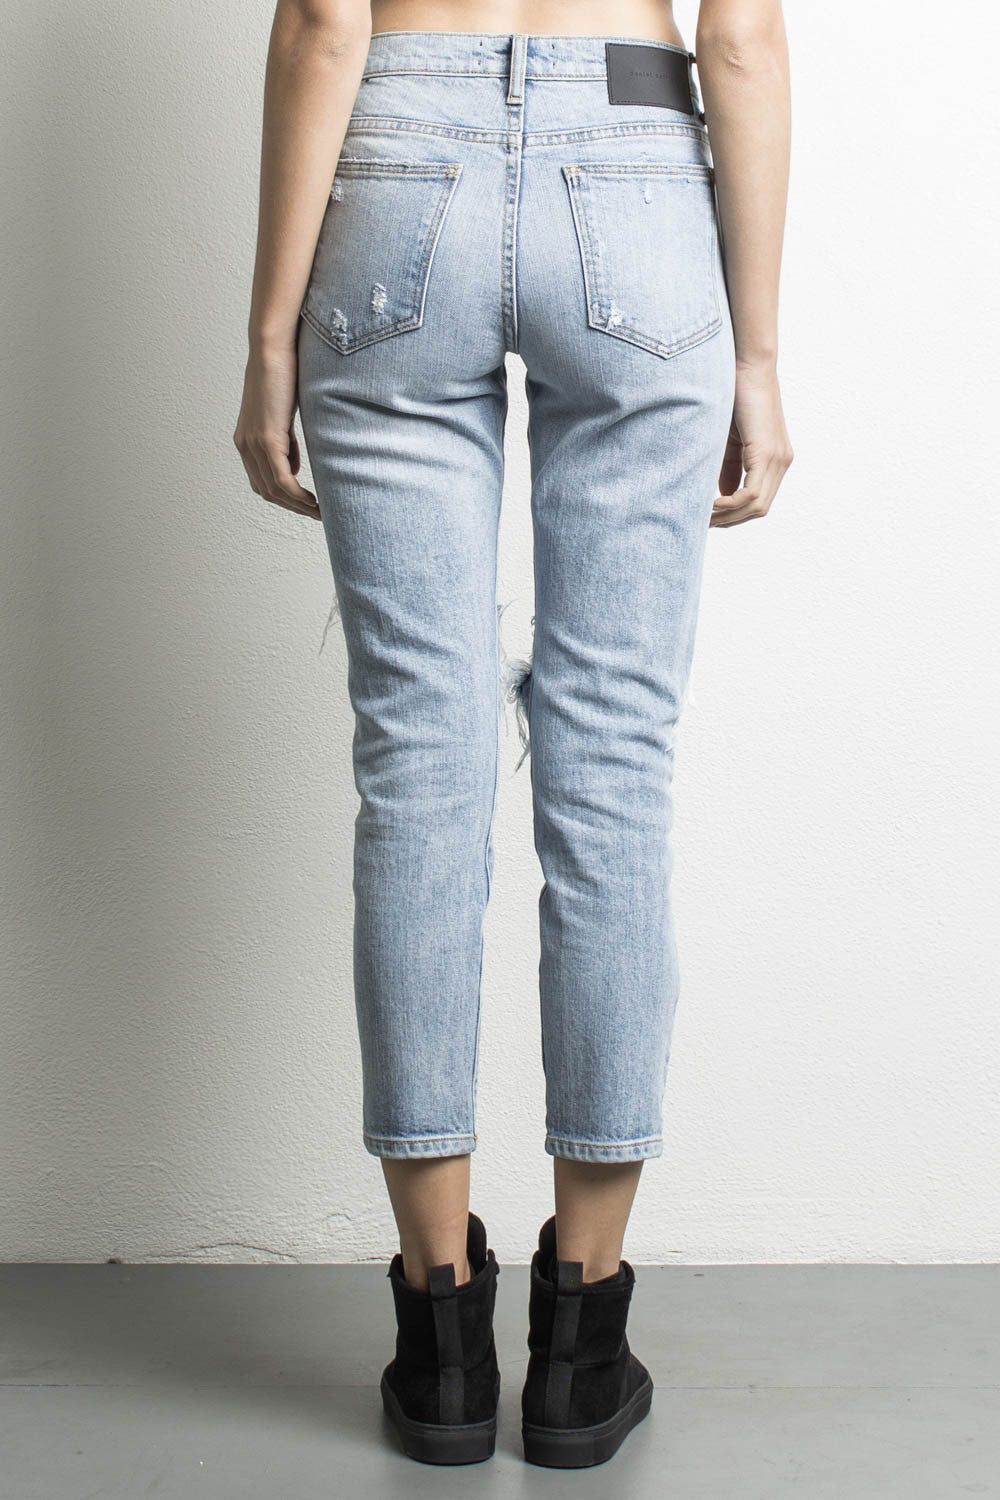 womens high waisted denim jeans in blue wash by daniel patrick